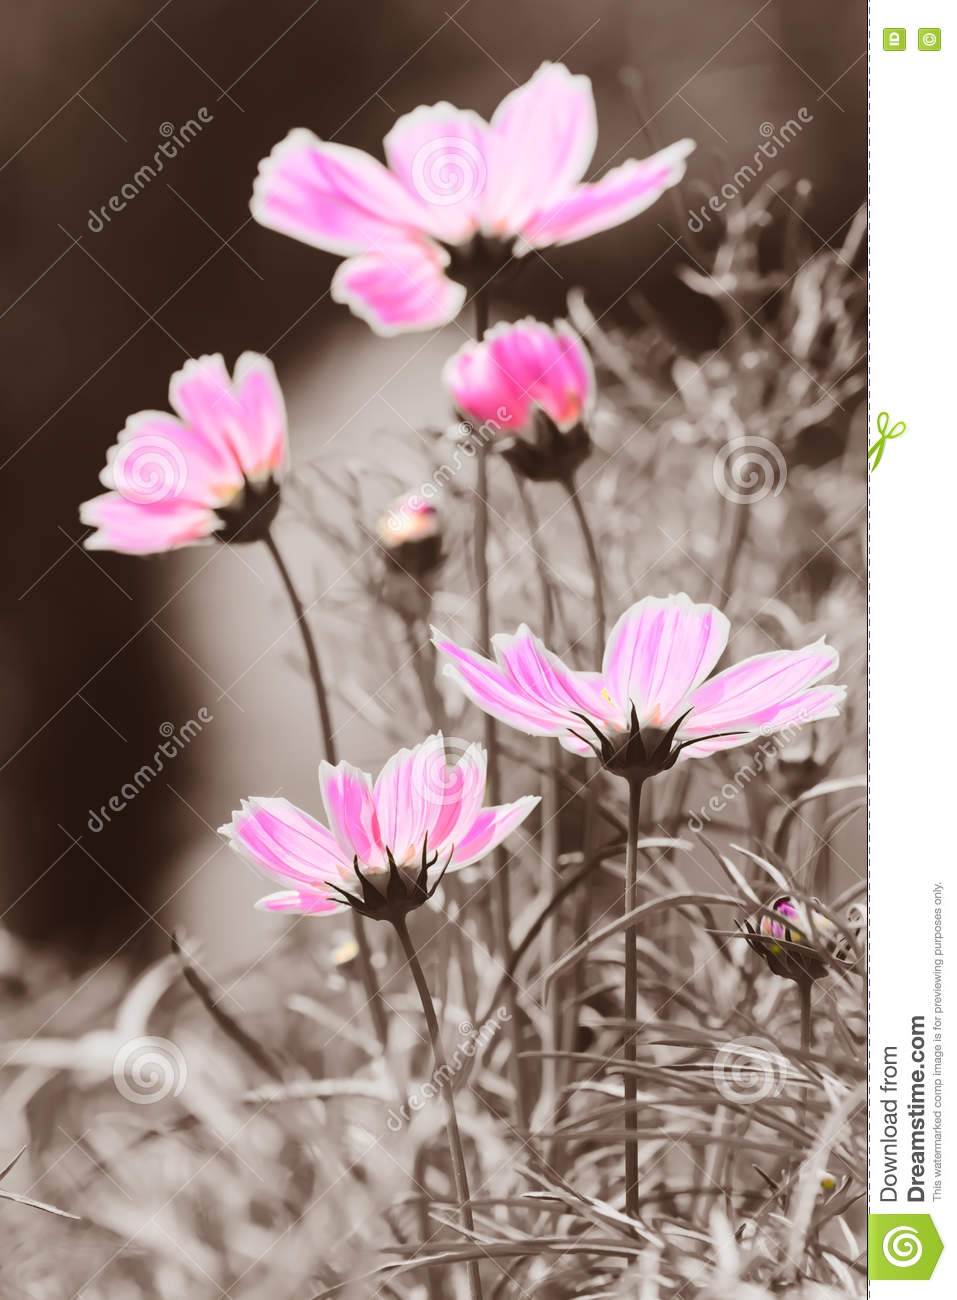 Cosmos Flower In Black And White Background Royalty Free Stock Photo